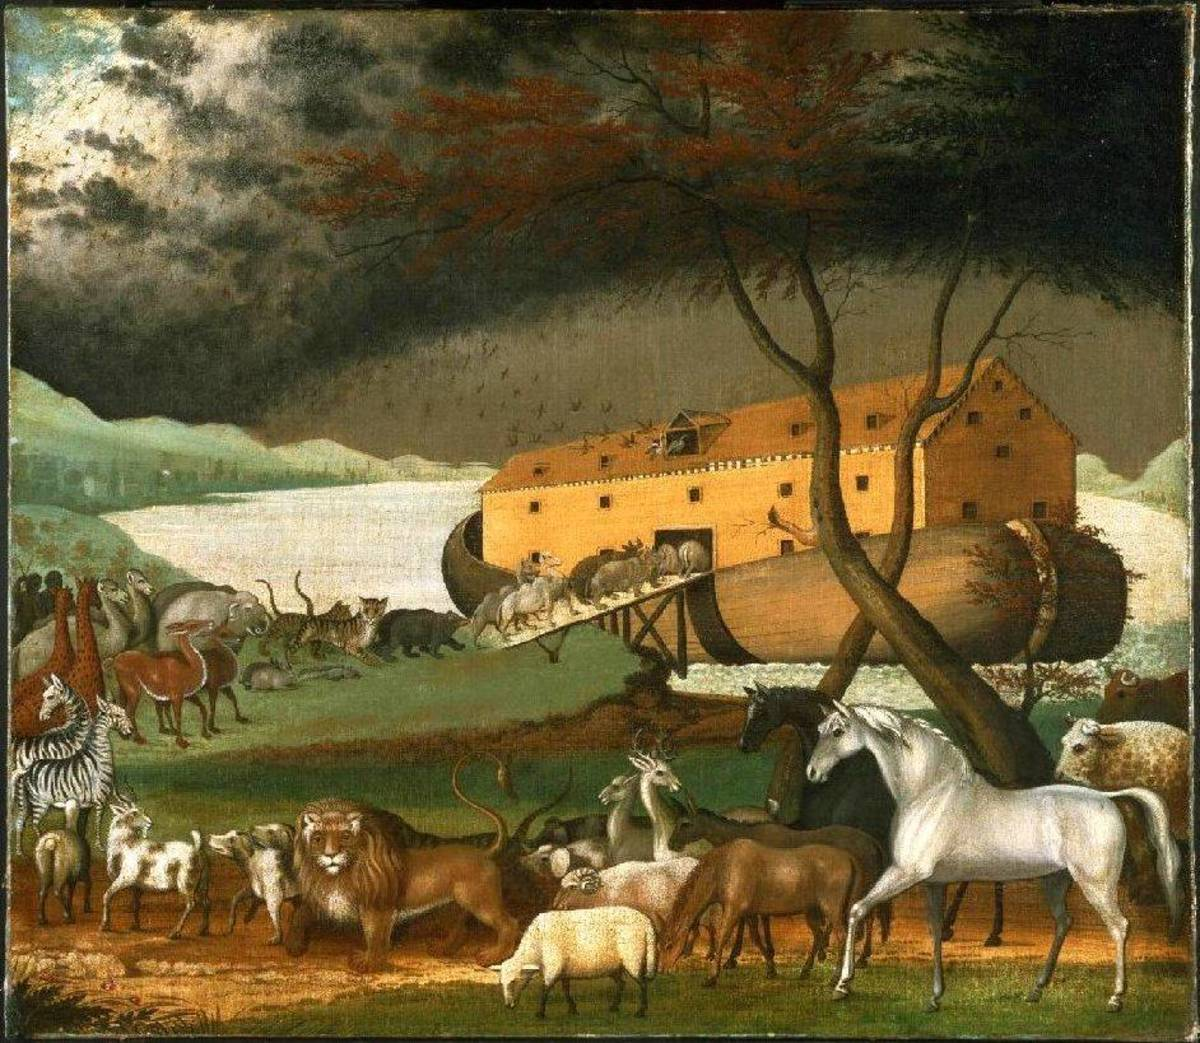 Noah's Ark resting on Mount Ararat.